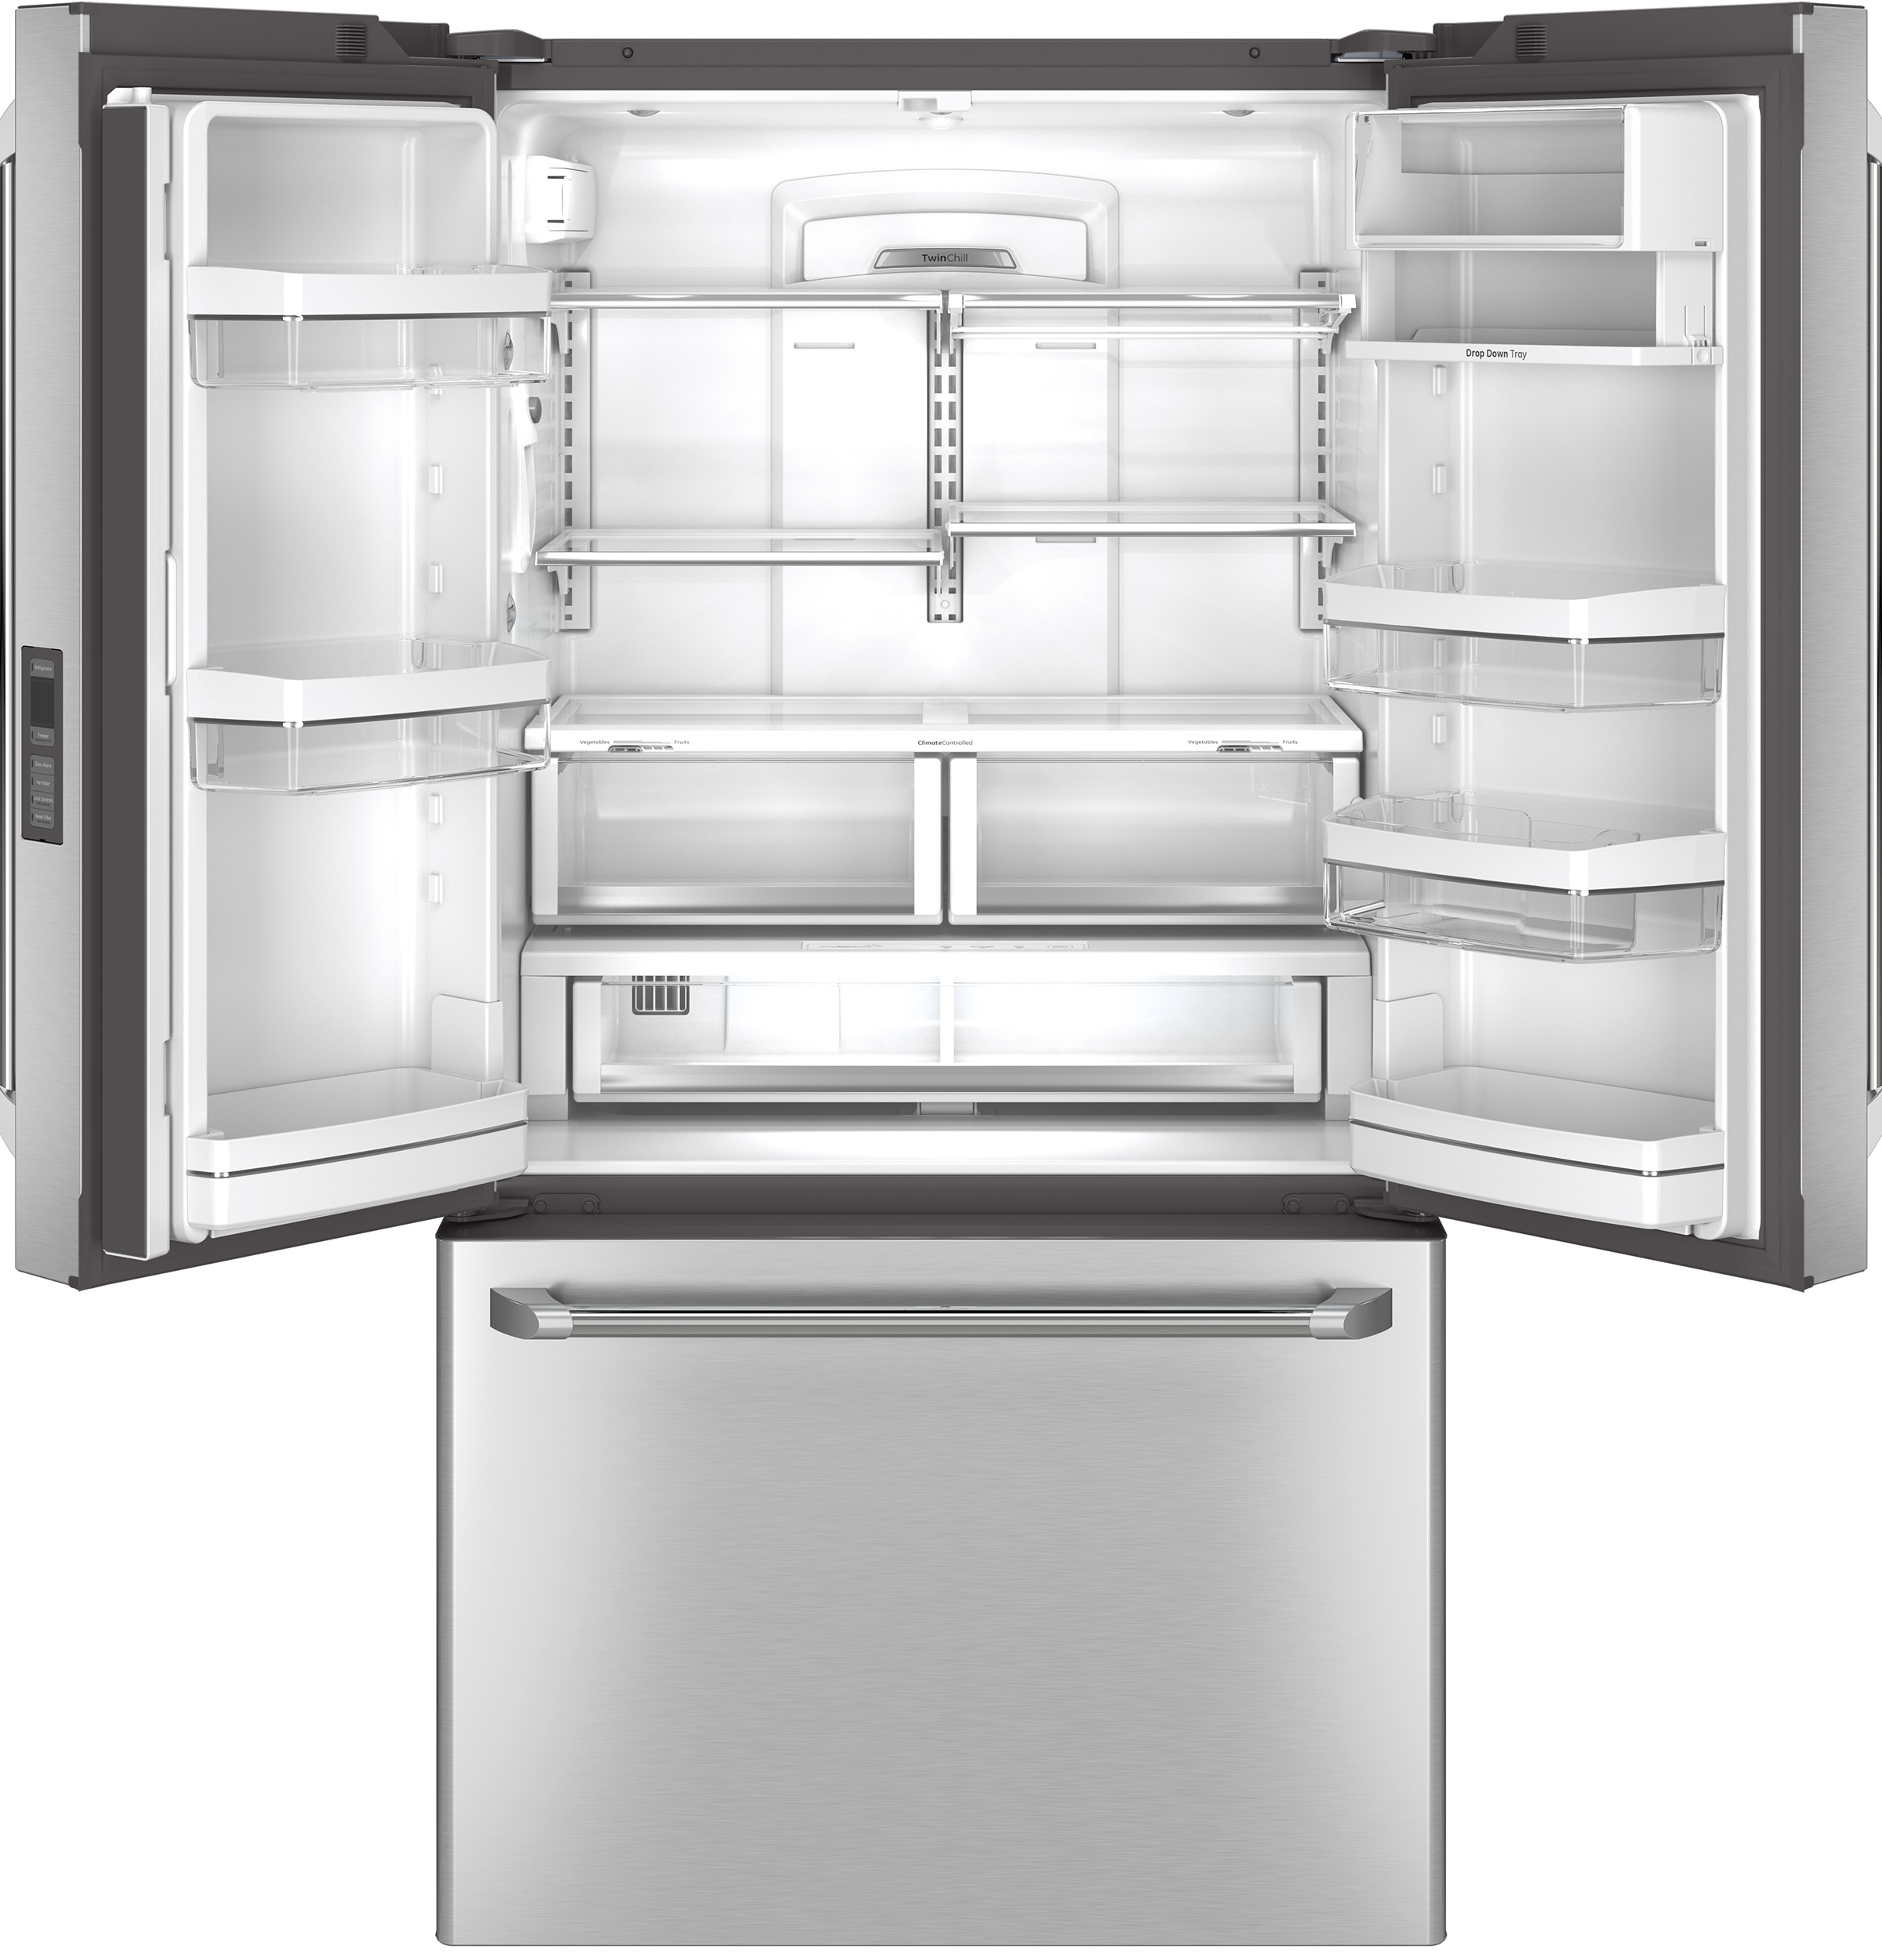 GE Cafe™ Series CWE23SSHSS 23 cu. ft. Counter-Depth French-Door Refrigerator - Stainless Steel